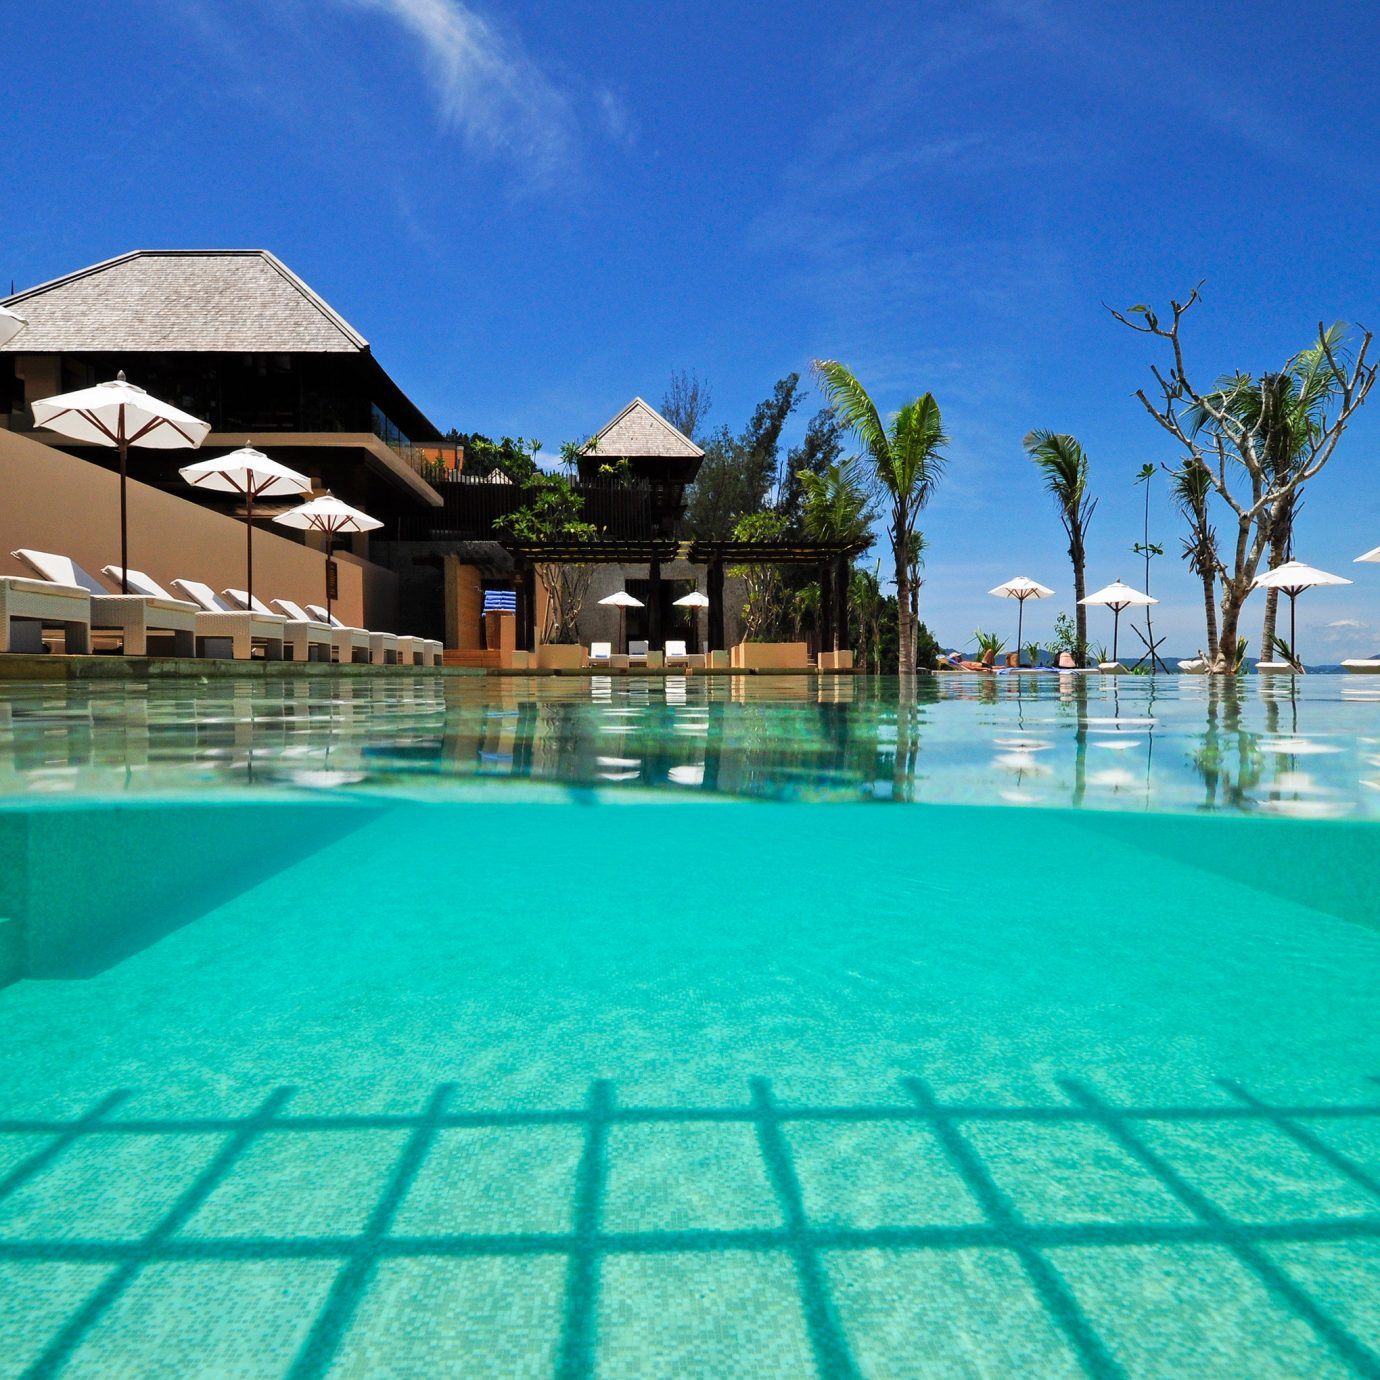 sky swimming pool leisure property Pool Resort condominium resort town blue swimming